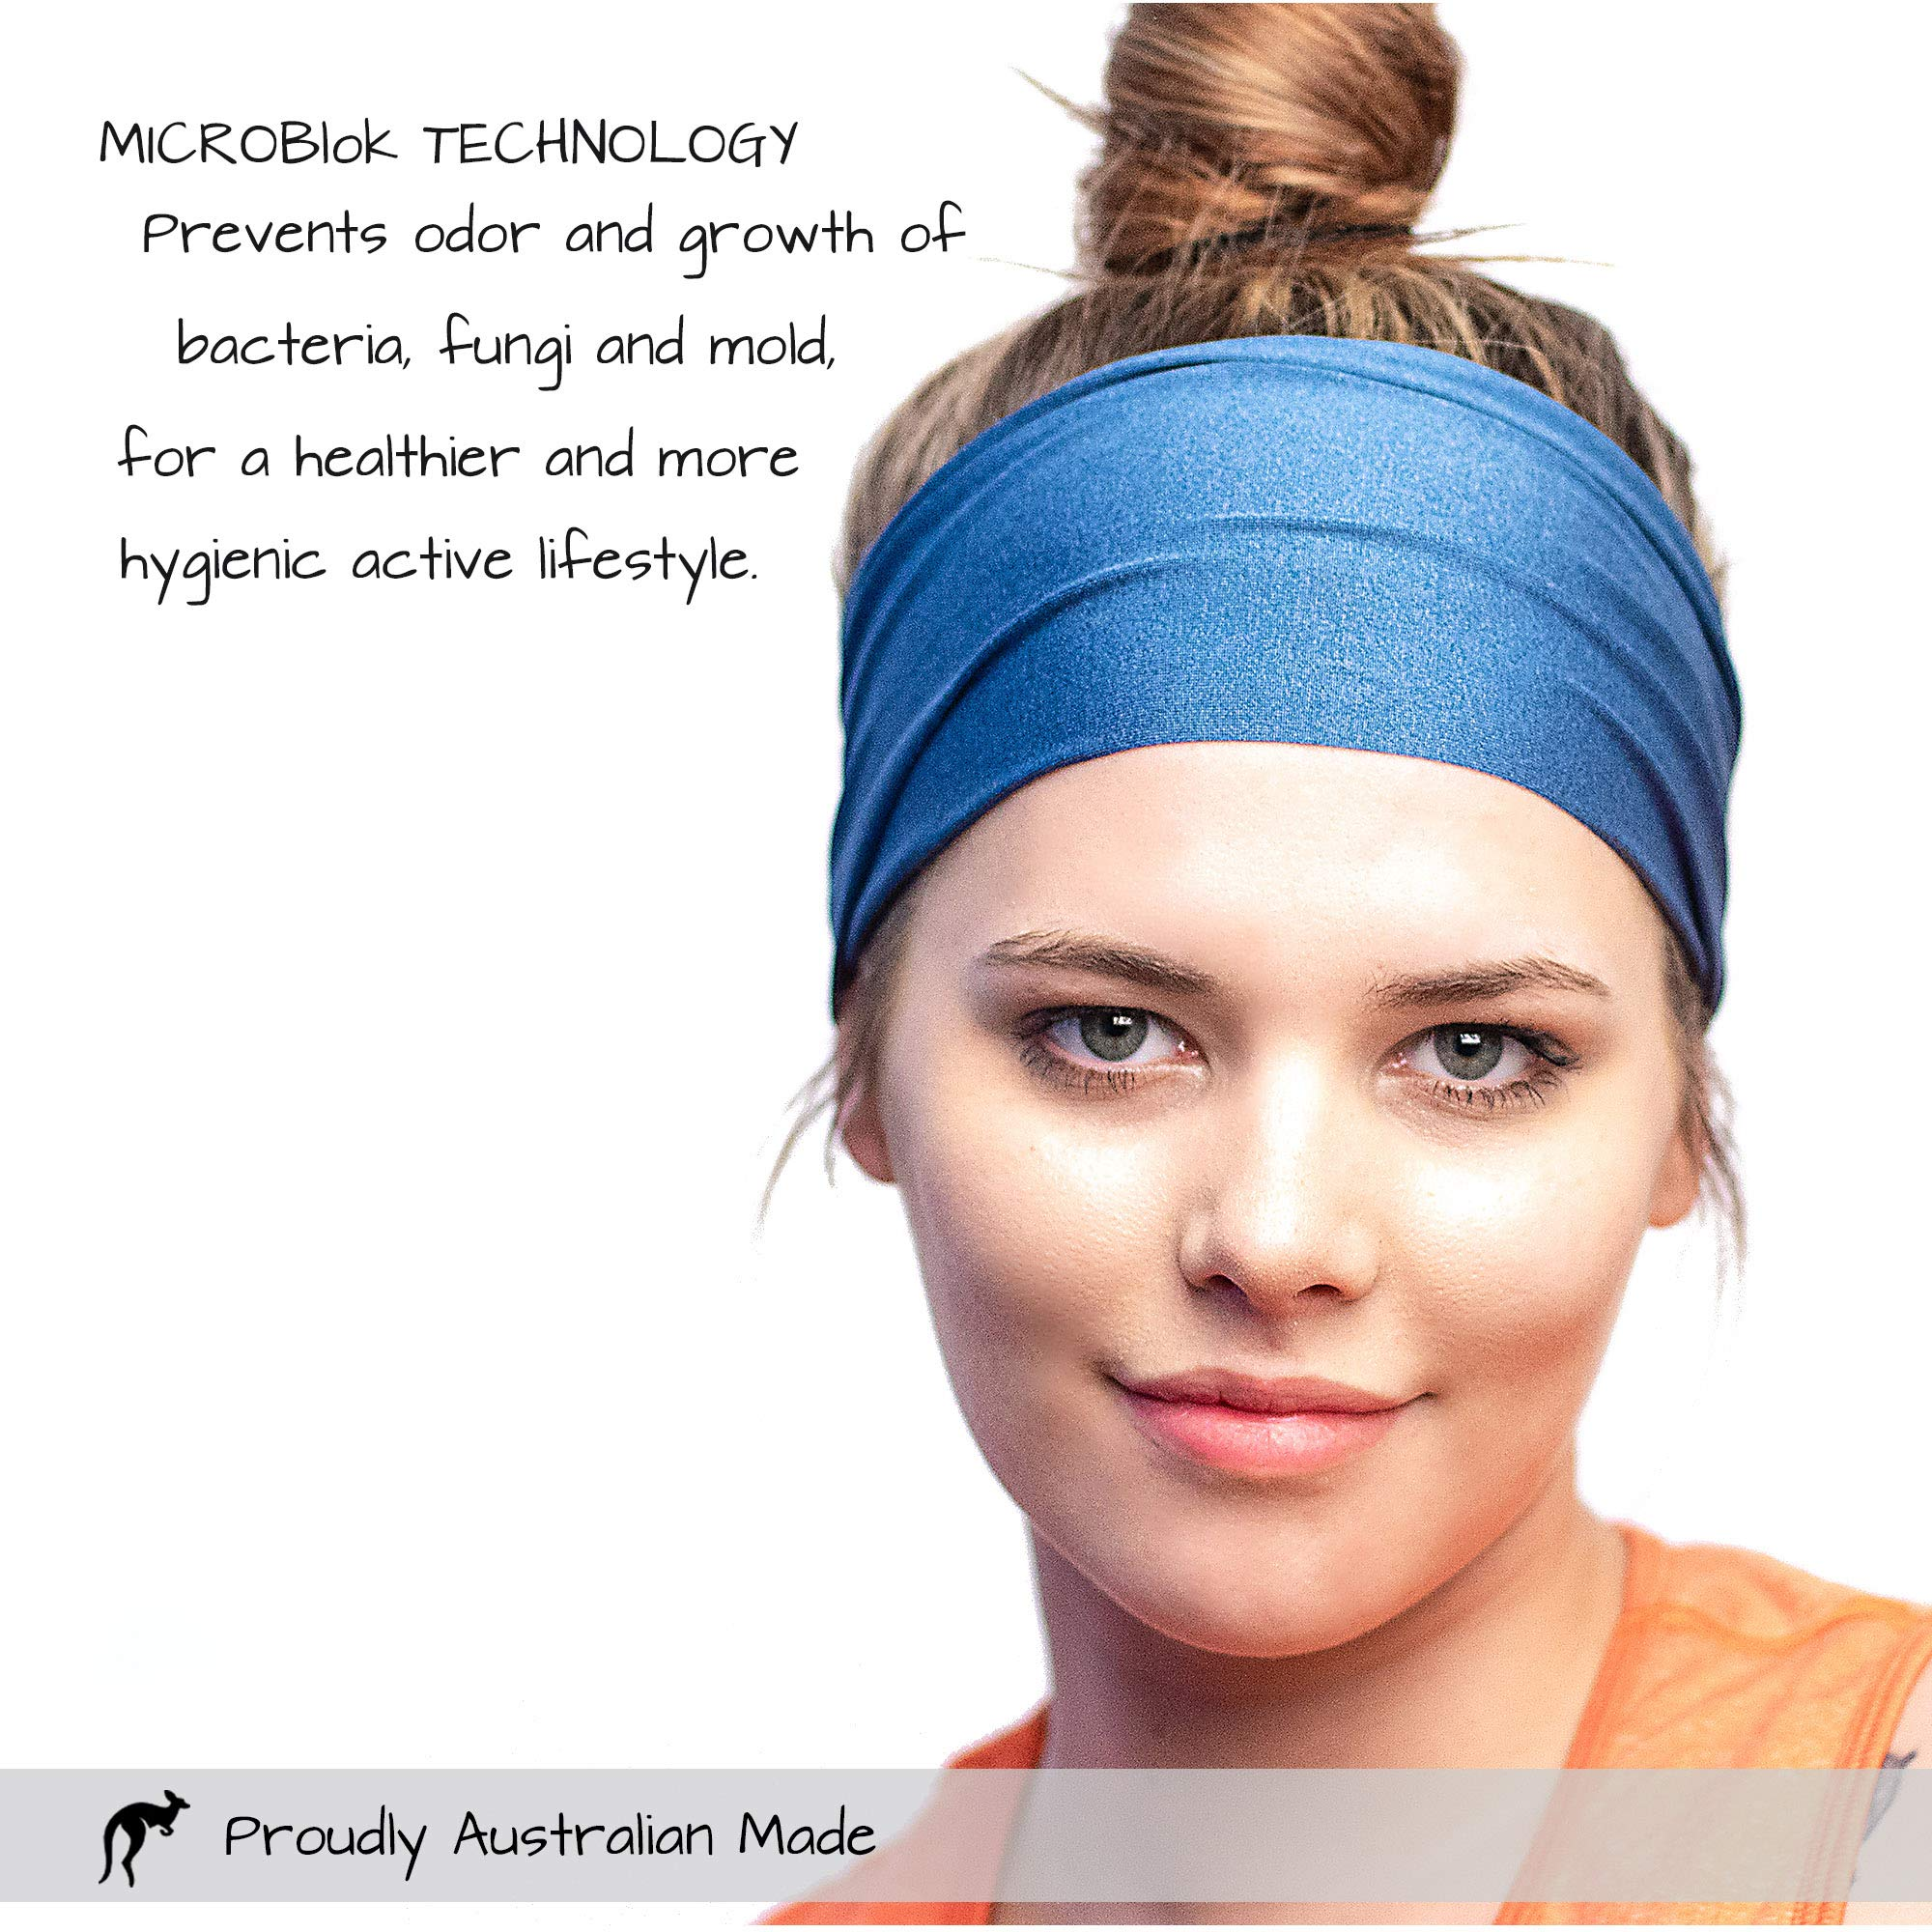 Red Dust Active Workout Headband - Ideal for Sports, Fitness, Running, The Gym & Yoga - Moisture Wicking - Non-Slip - Exercise Sweatband - Designed for Versatility & The Active Women by Red Dust Active (Image #5)